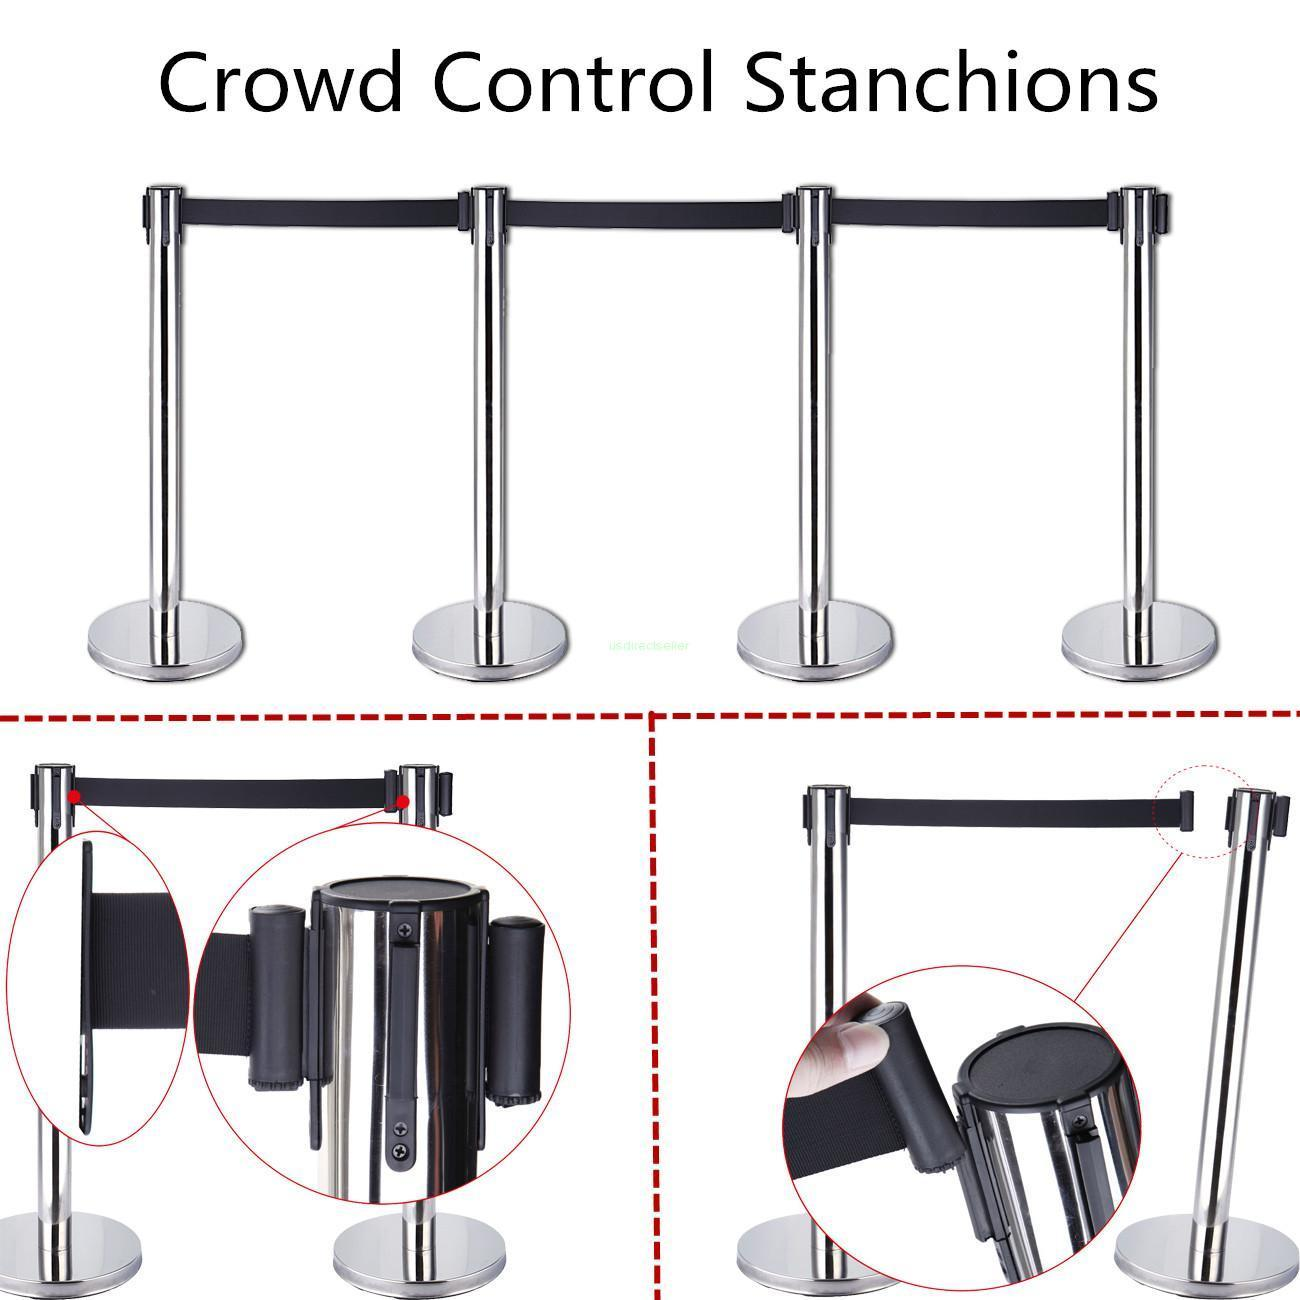 (Ship from CA)4x Retractable Stanchions /Stretch Style Crowd Control Barriers Black Belts New max 5m belt lengthe wall amoutn barrier stanchions retractable betl for area separation